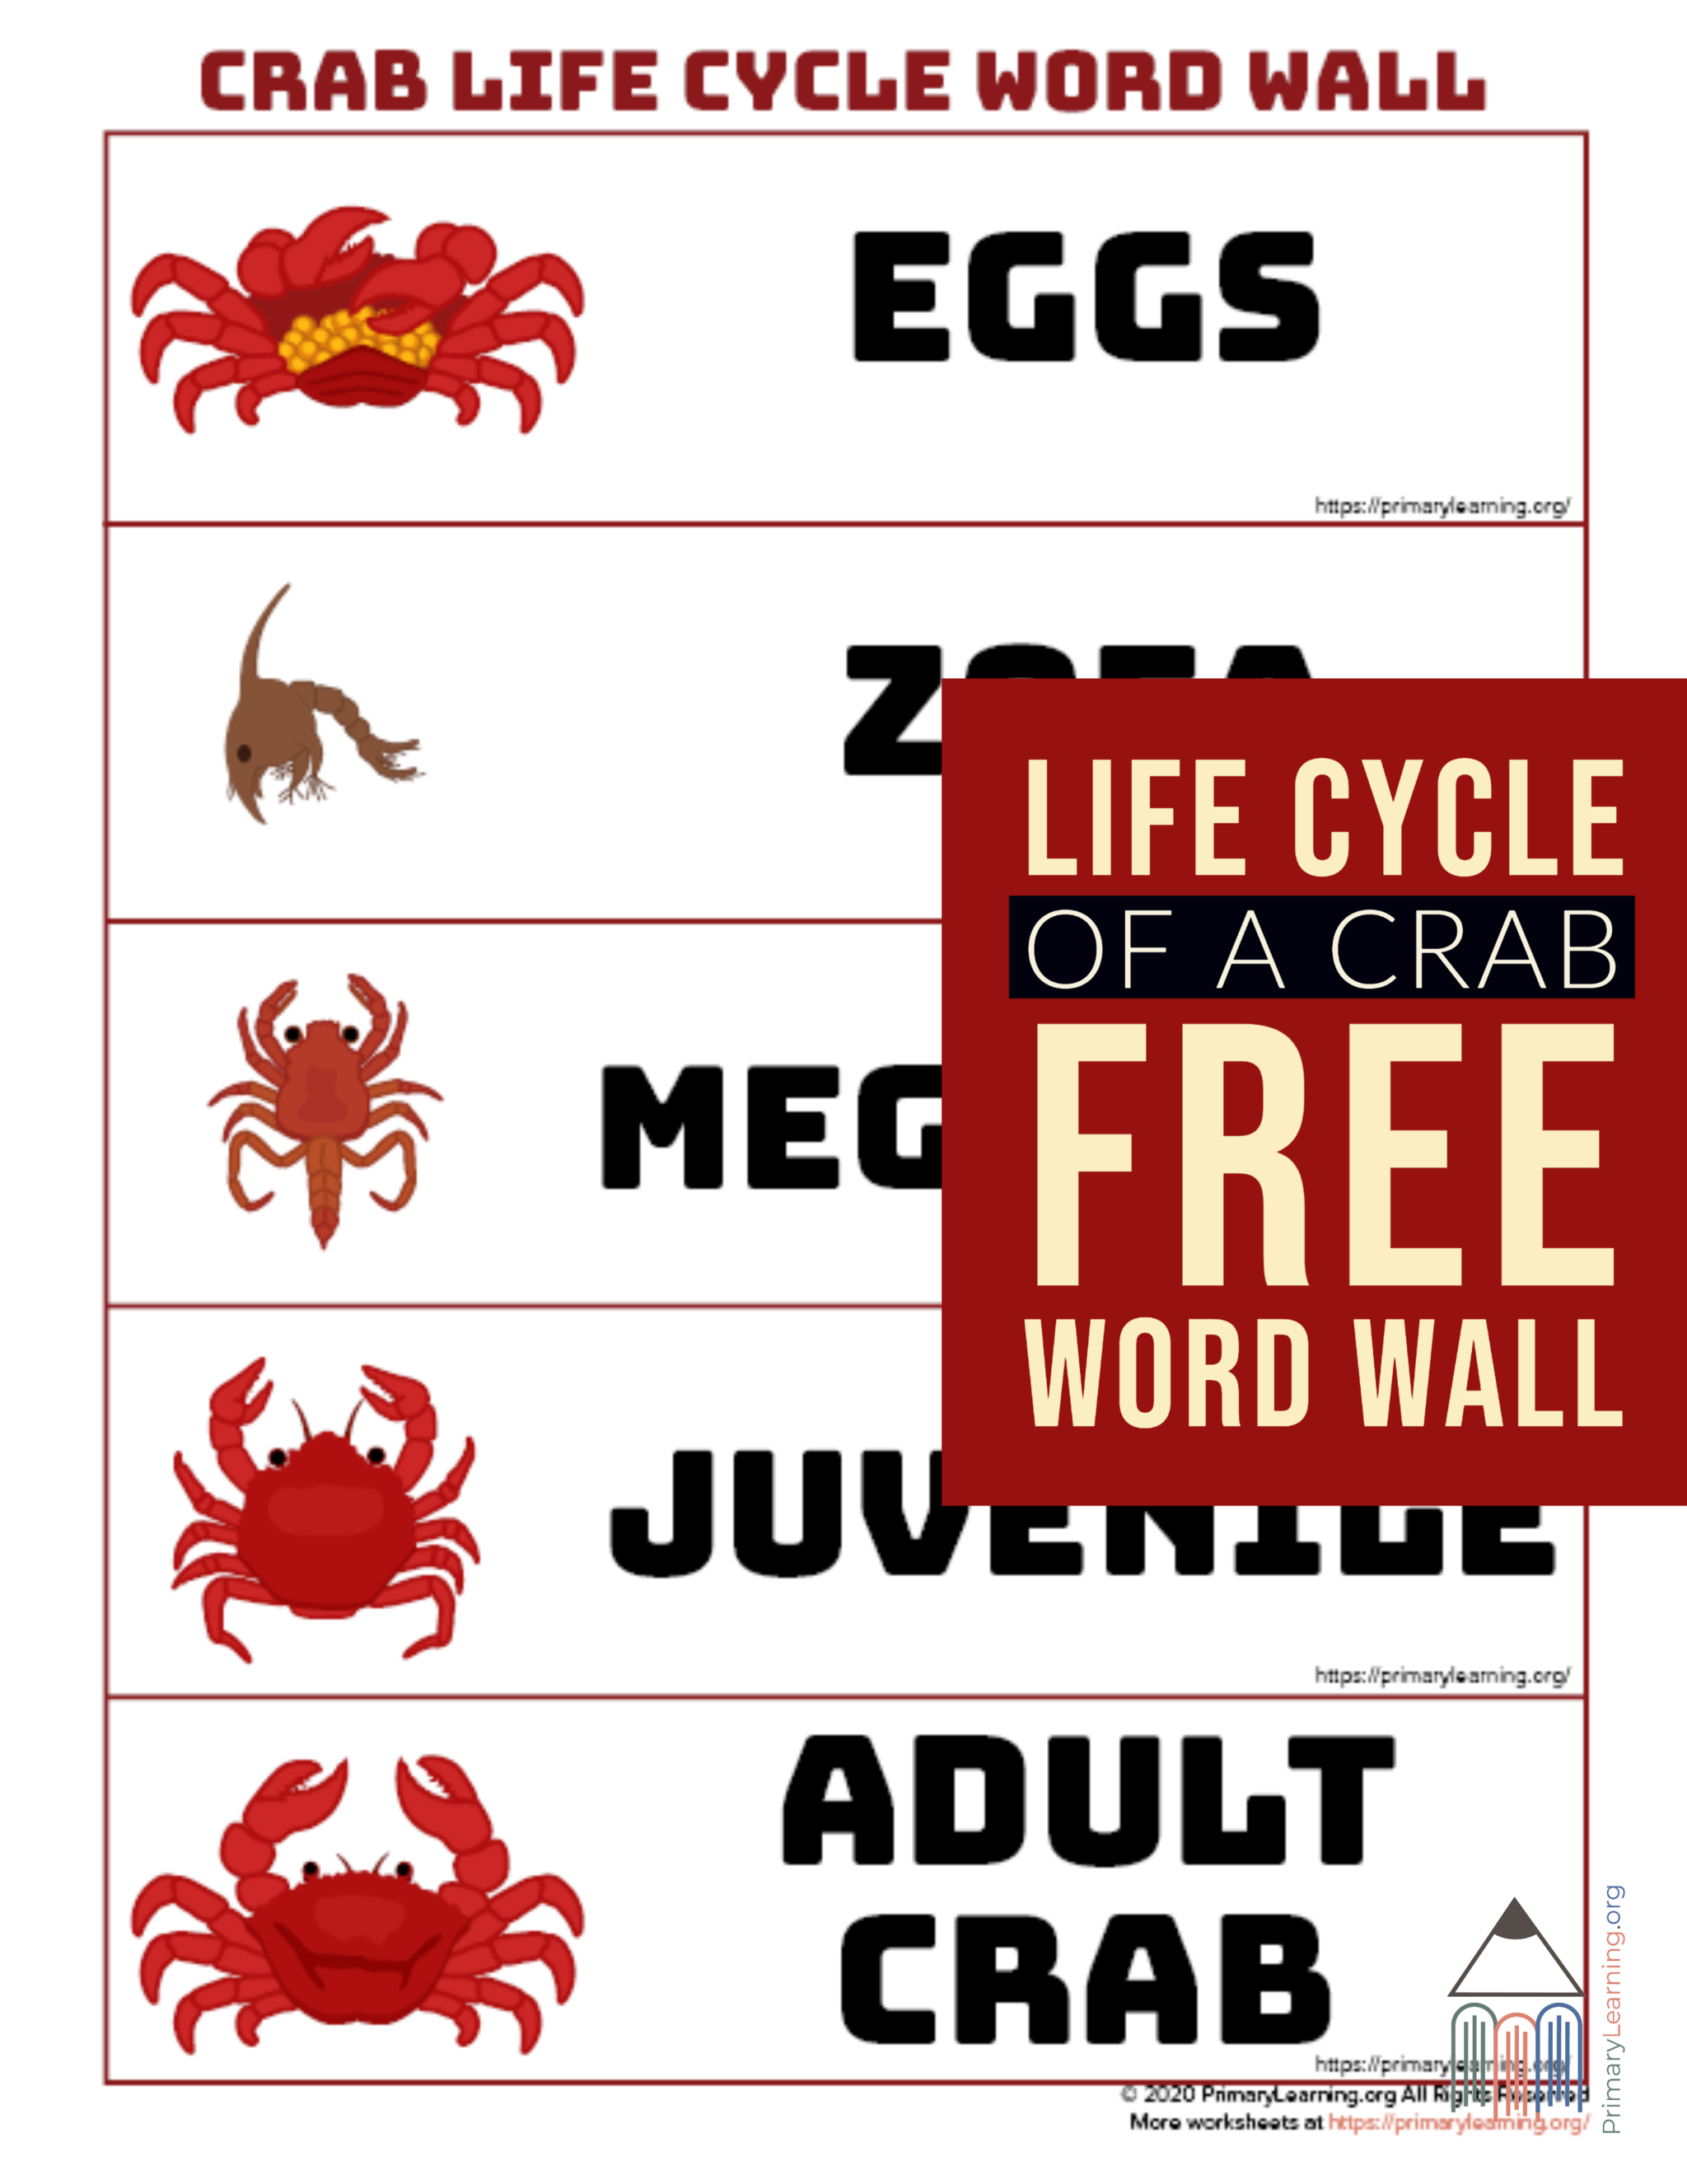 Crab Life Cycle Word Wall In